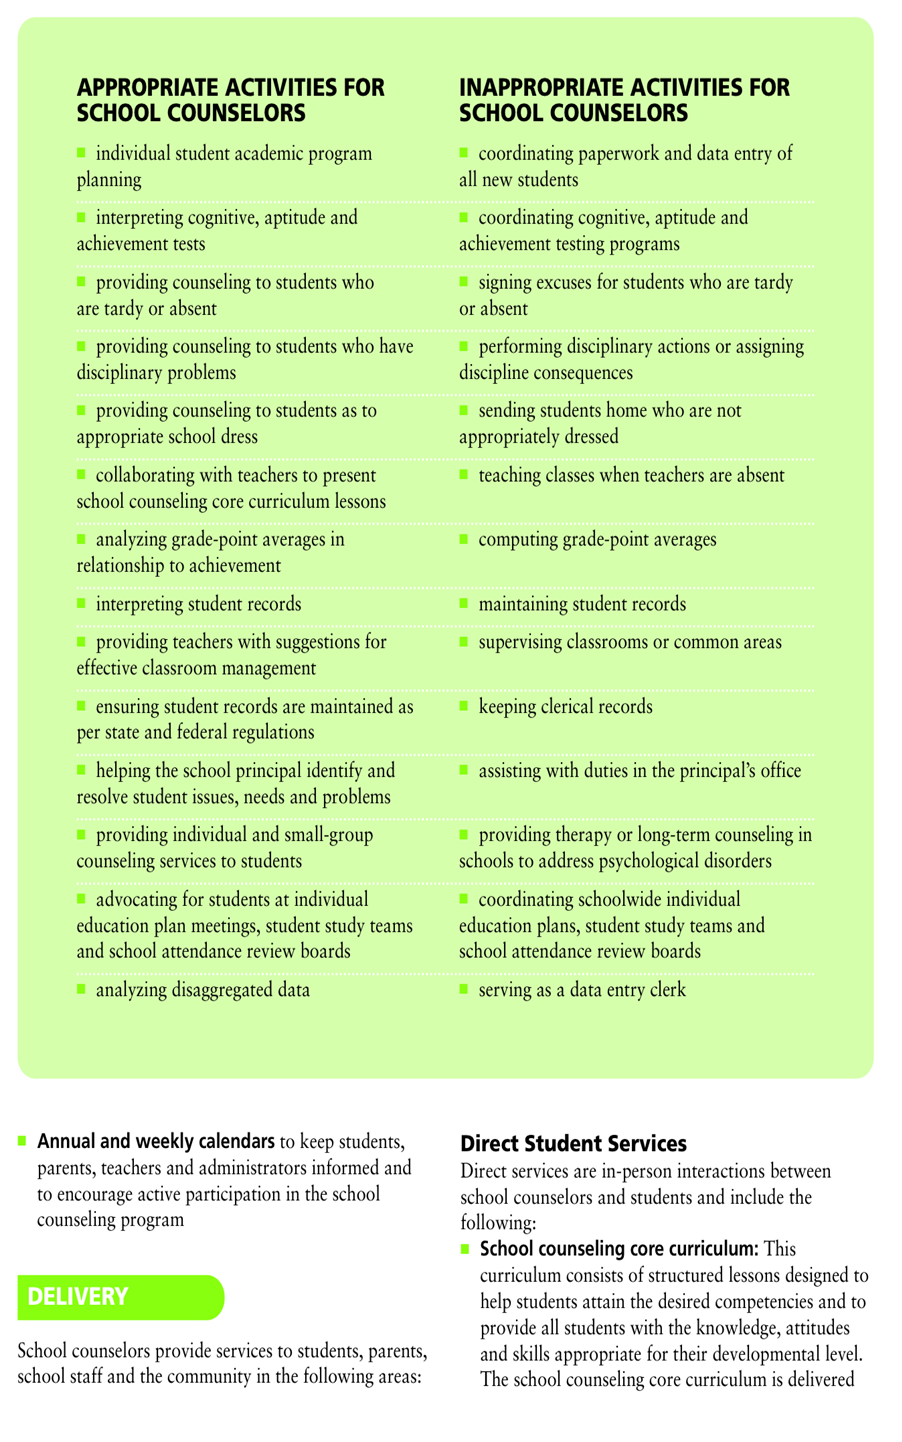 Exploring School Counseling Google Forms Collect And Analyze - School counselor lesson plan template